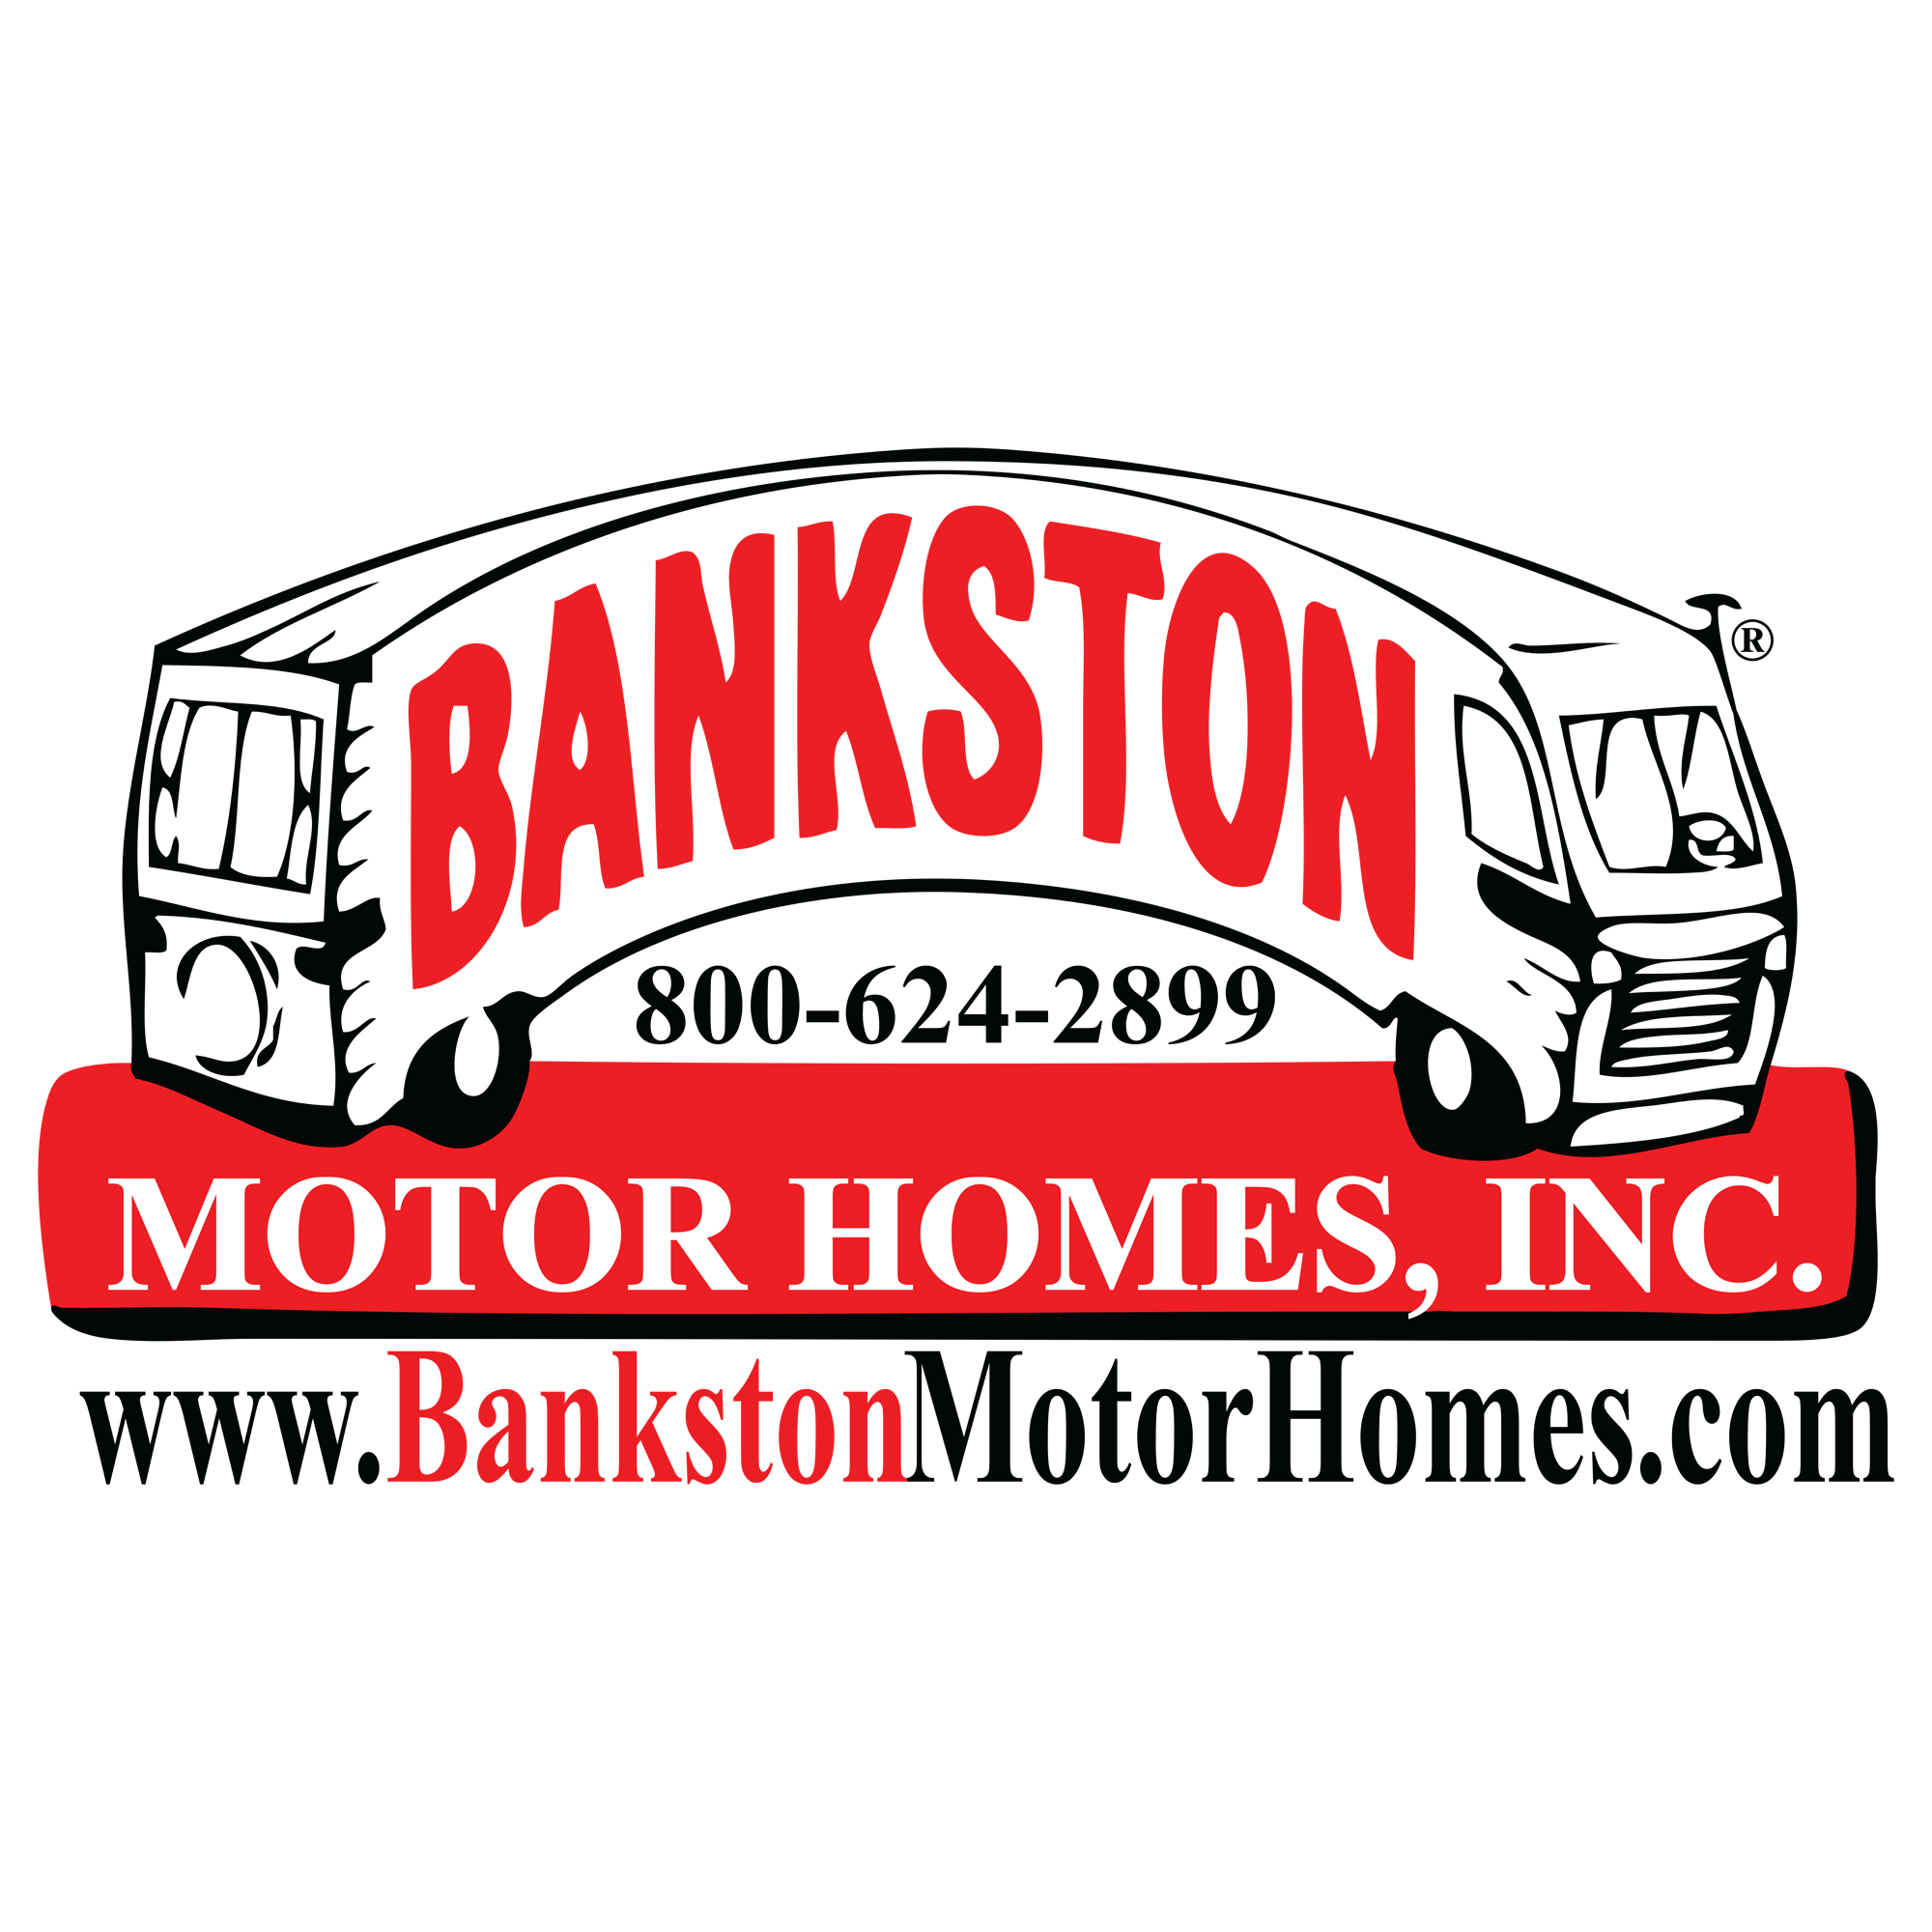 bankston motor homes 2191 jordan lane nw huntsville al